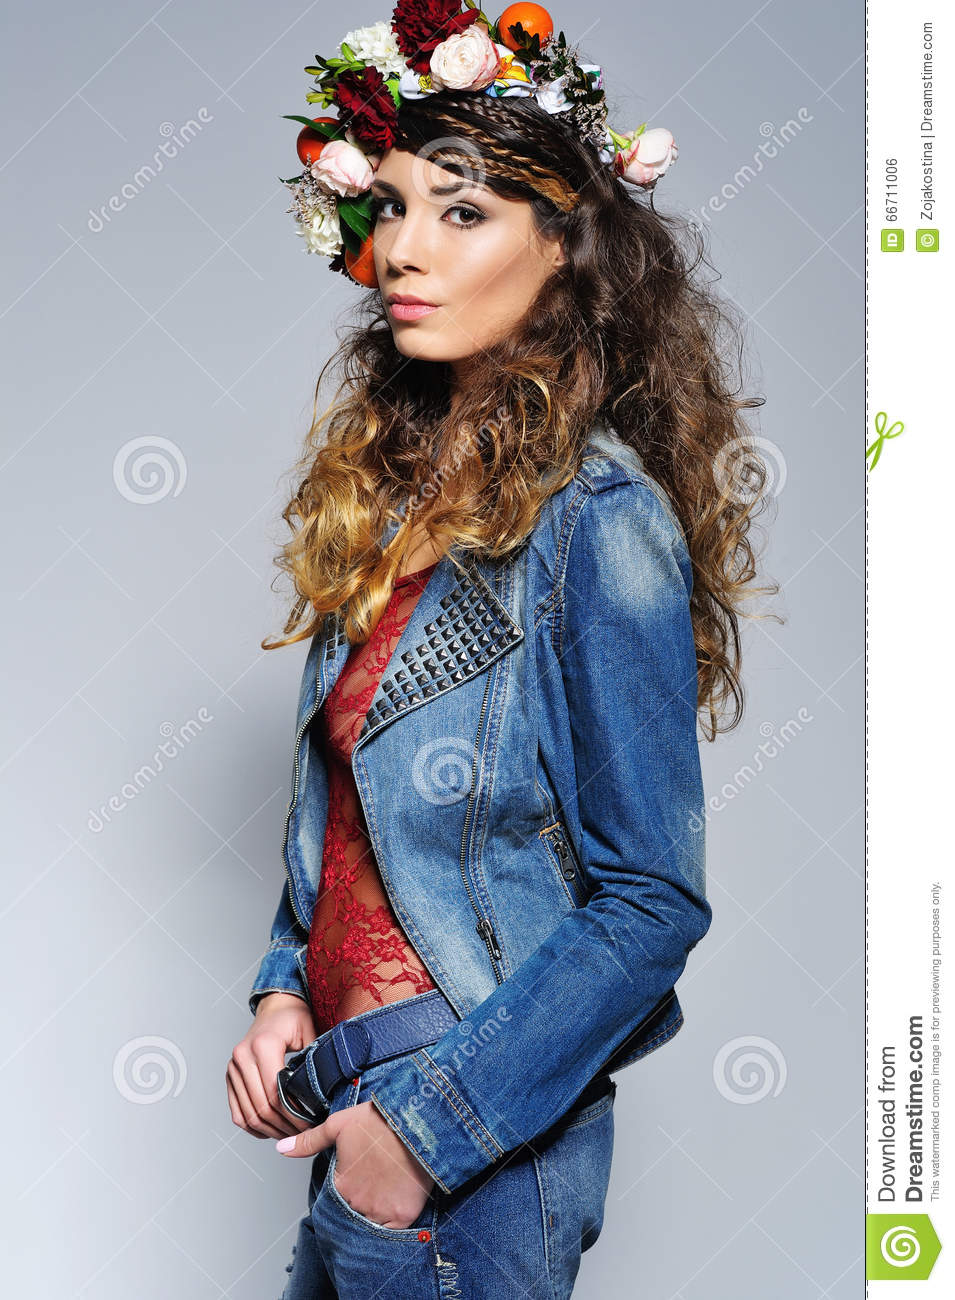 Beautiful Woman In Flower Crown Stock Photo Image Of Beauty